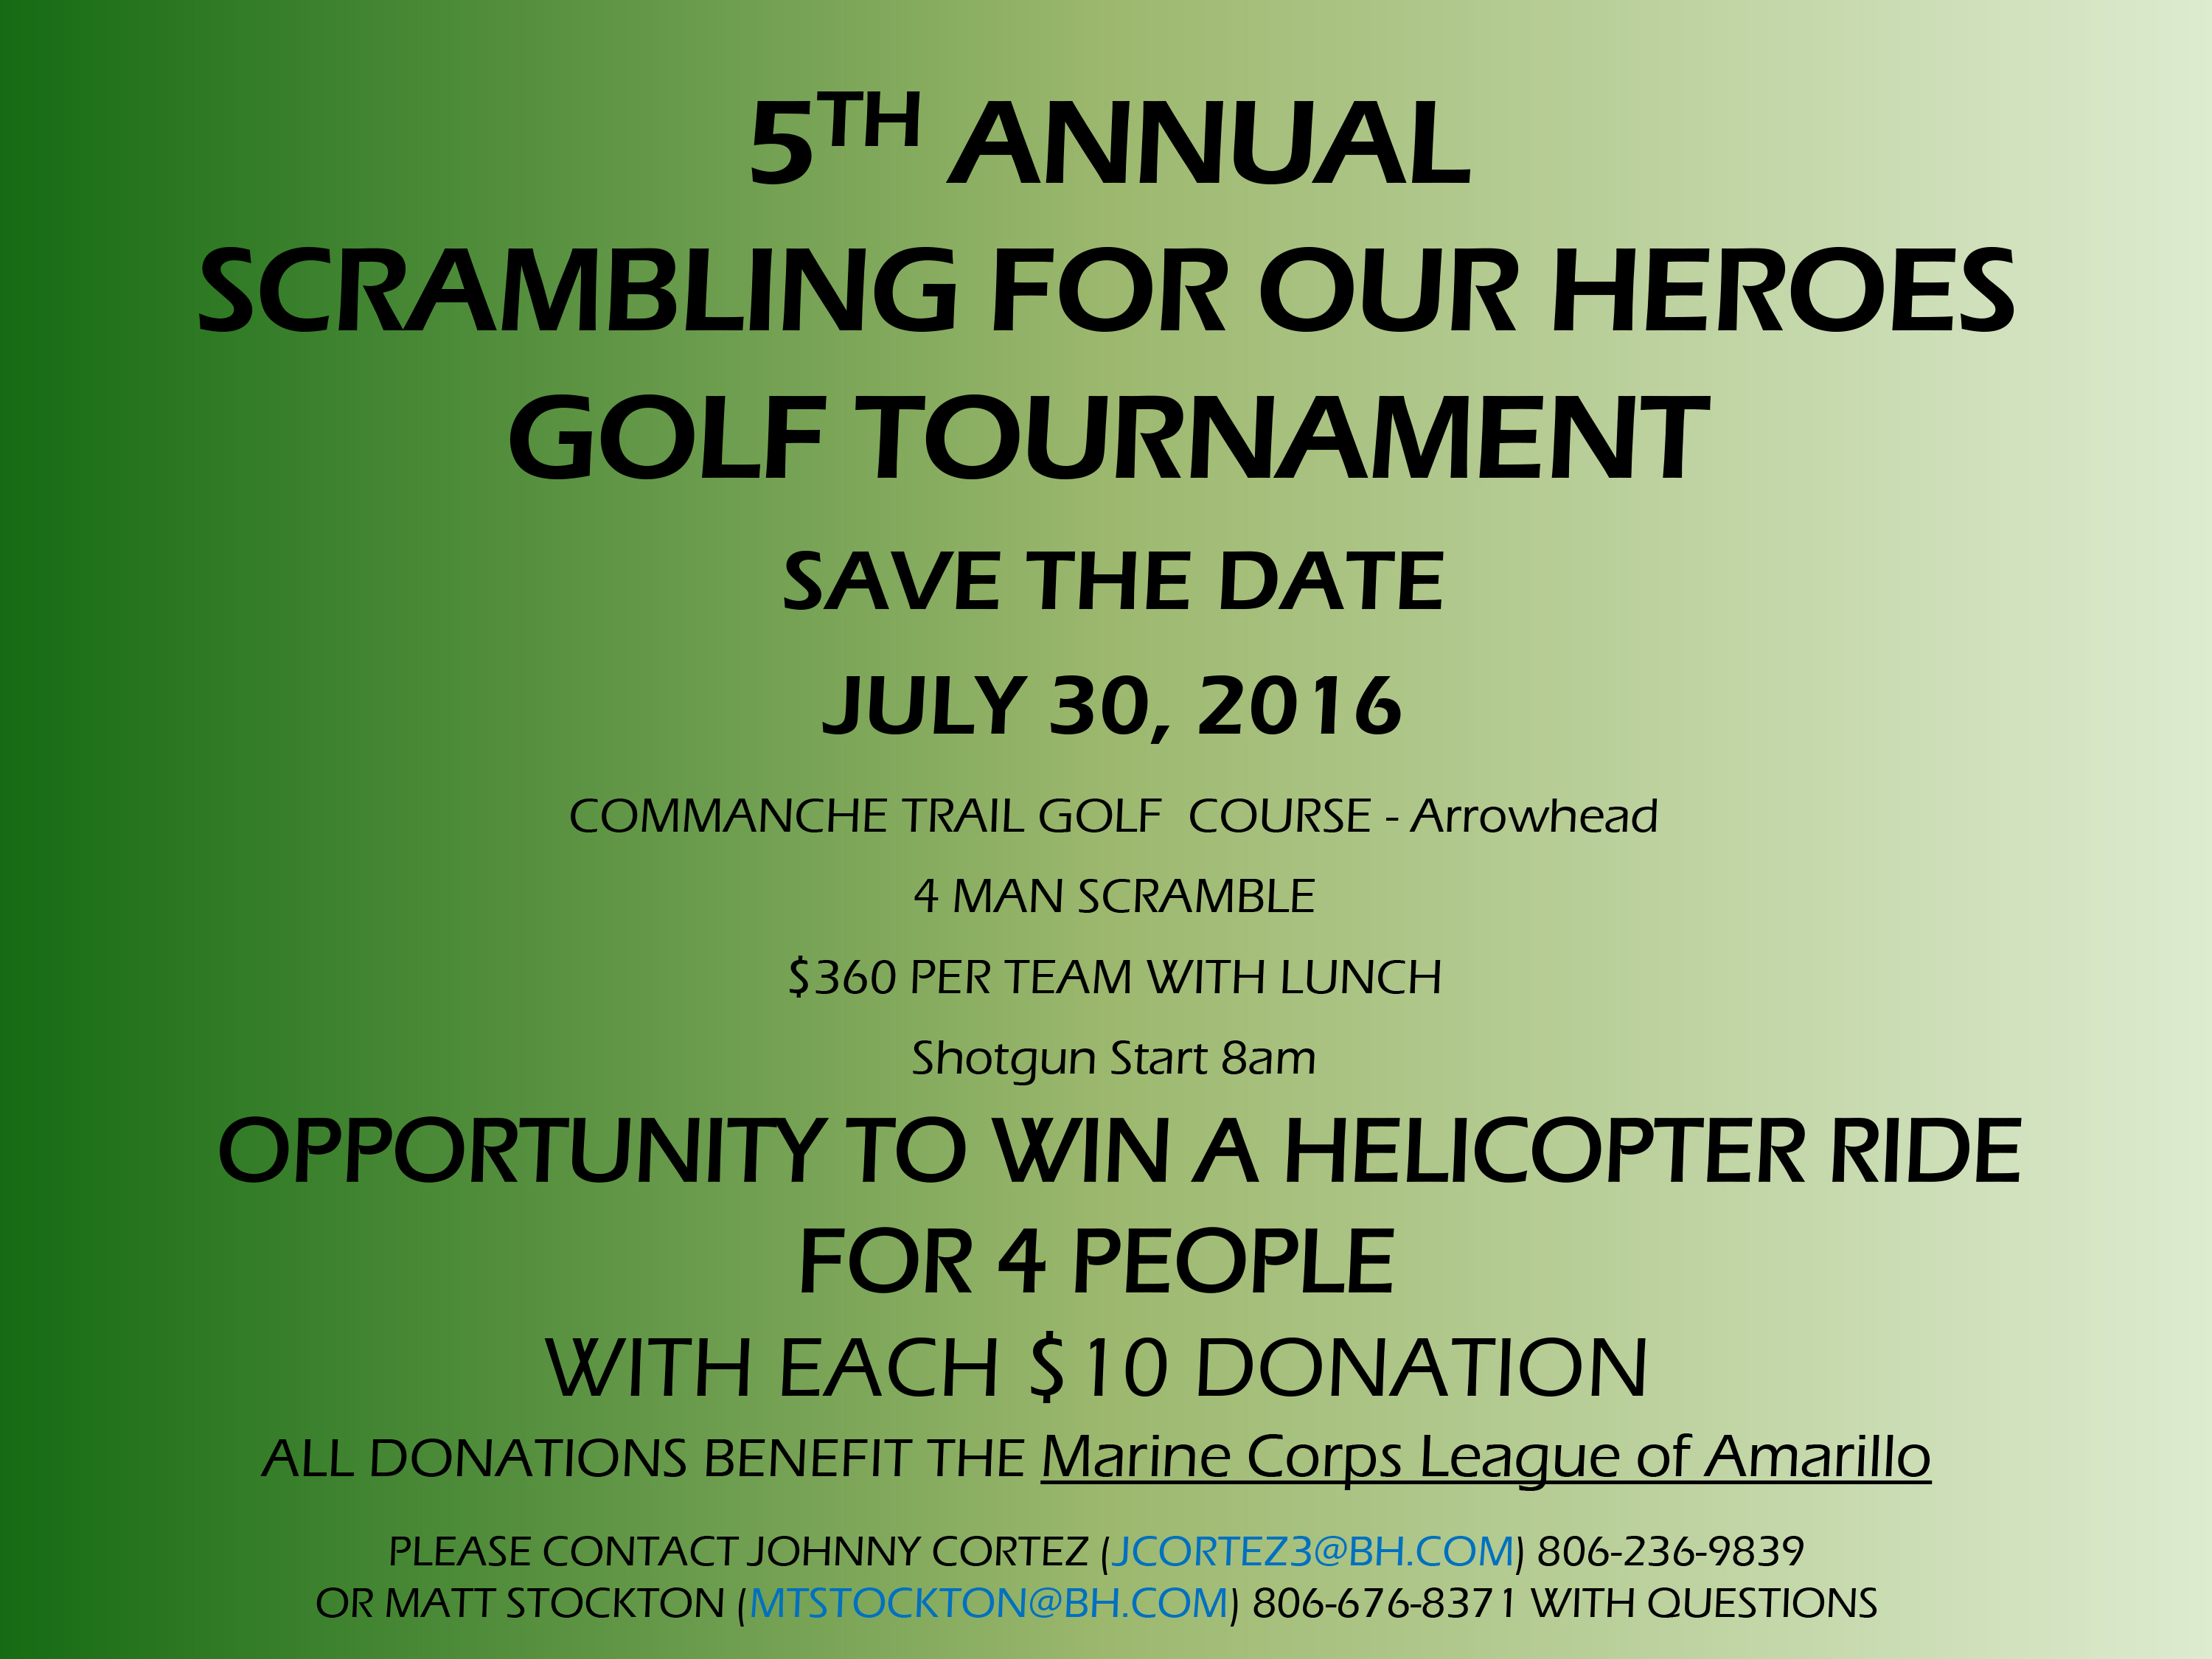 5th Annual Scrambling for Our Heroes Golf Tournament @ Commanche Trail Golf Course | Amarillo | Texas | United States